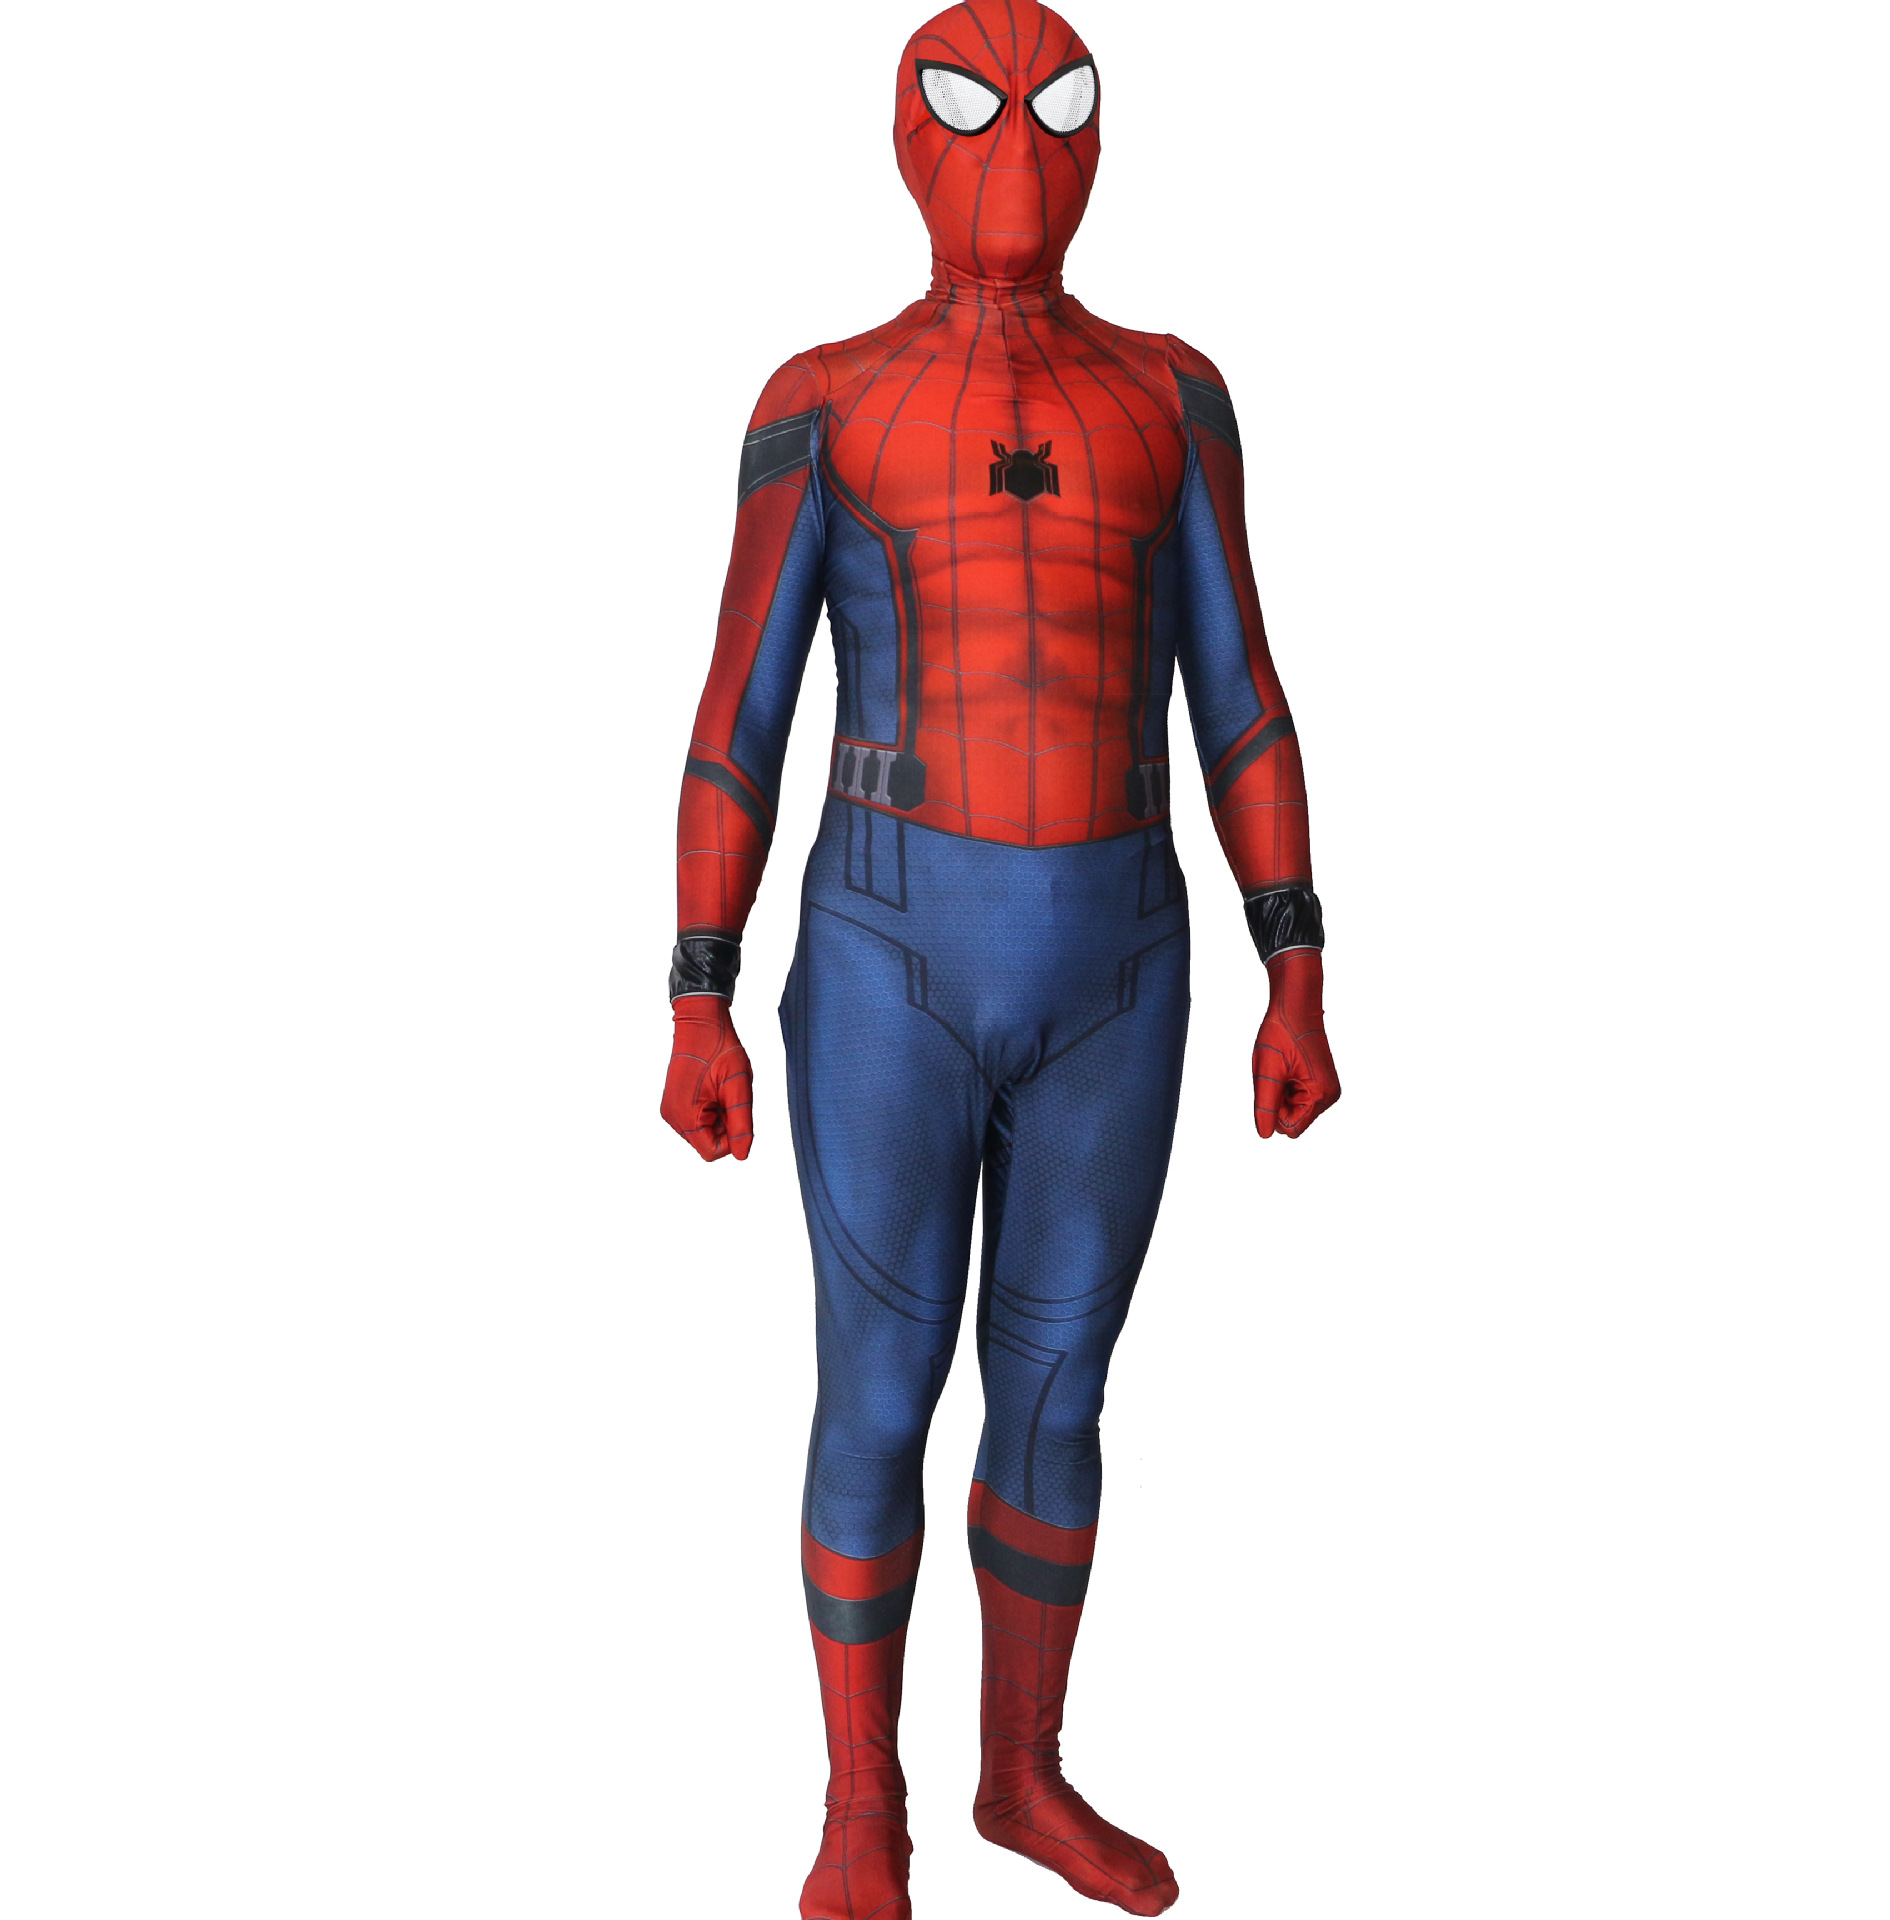 High Quality 3D print Spiderman Costume Amazing  Movie Theme Homecoming Superhero Cosplay Adult Men Halloween Costumes